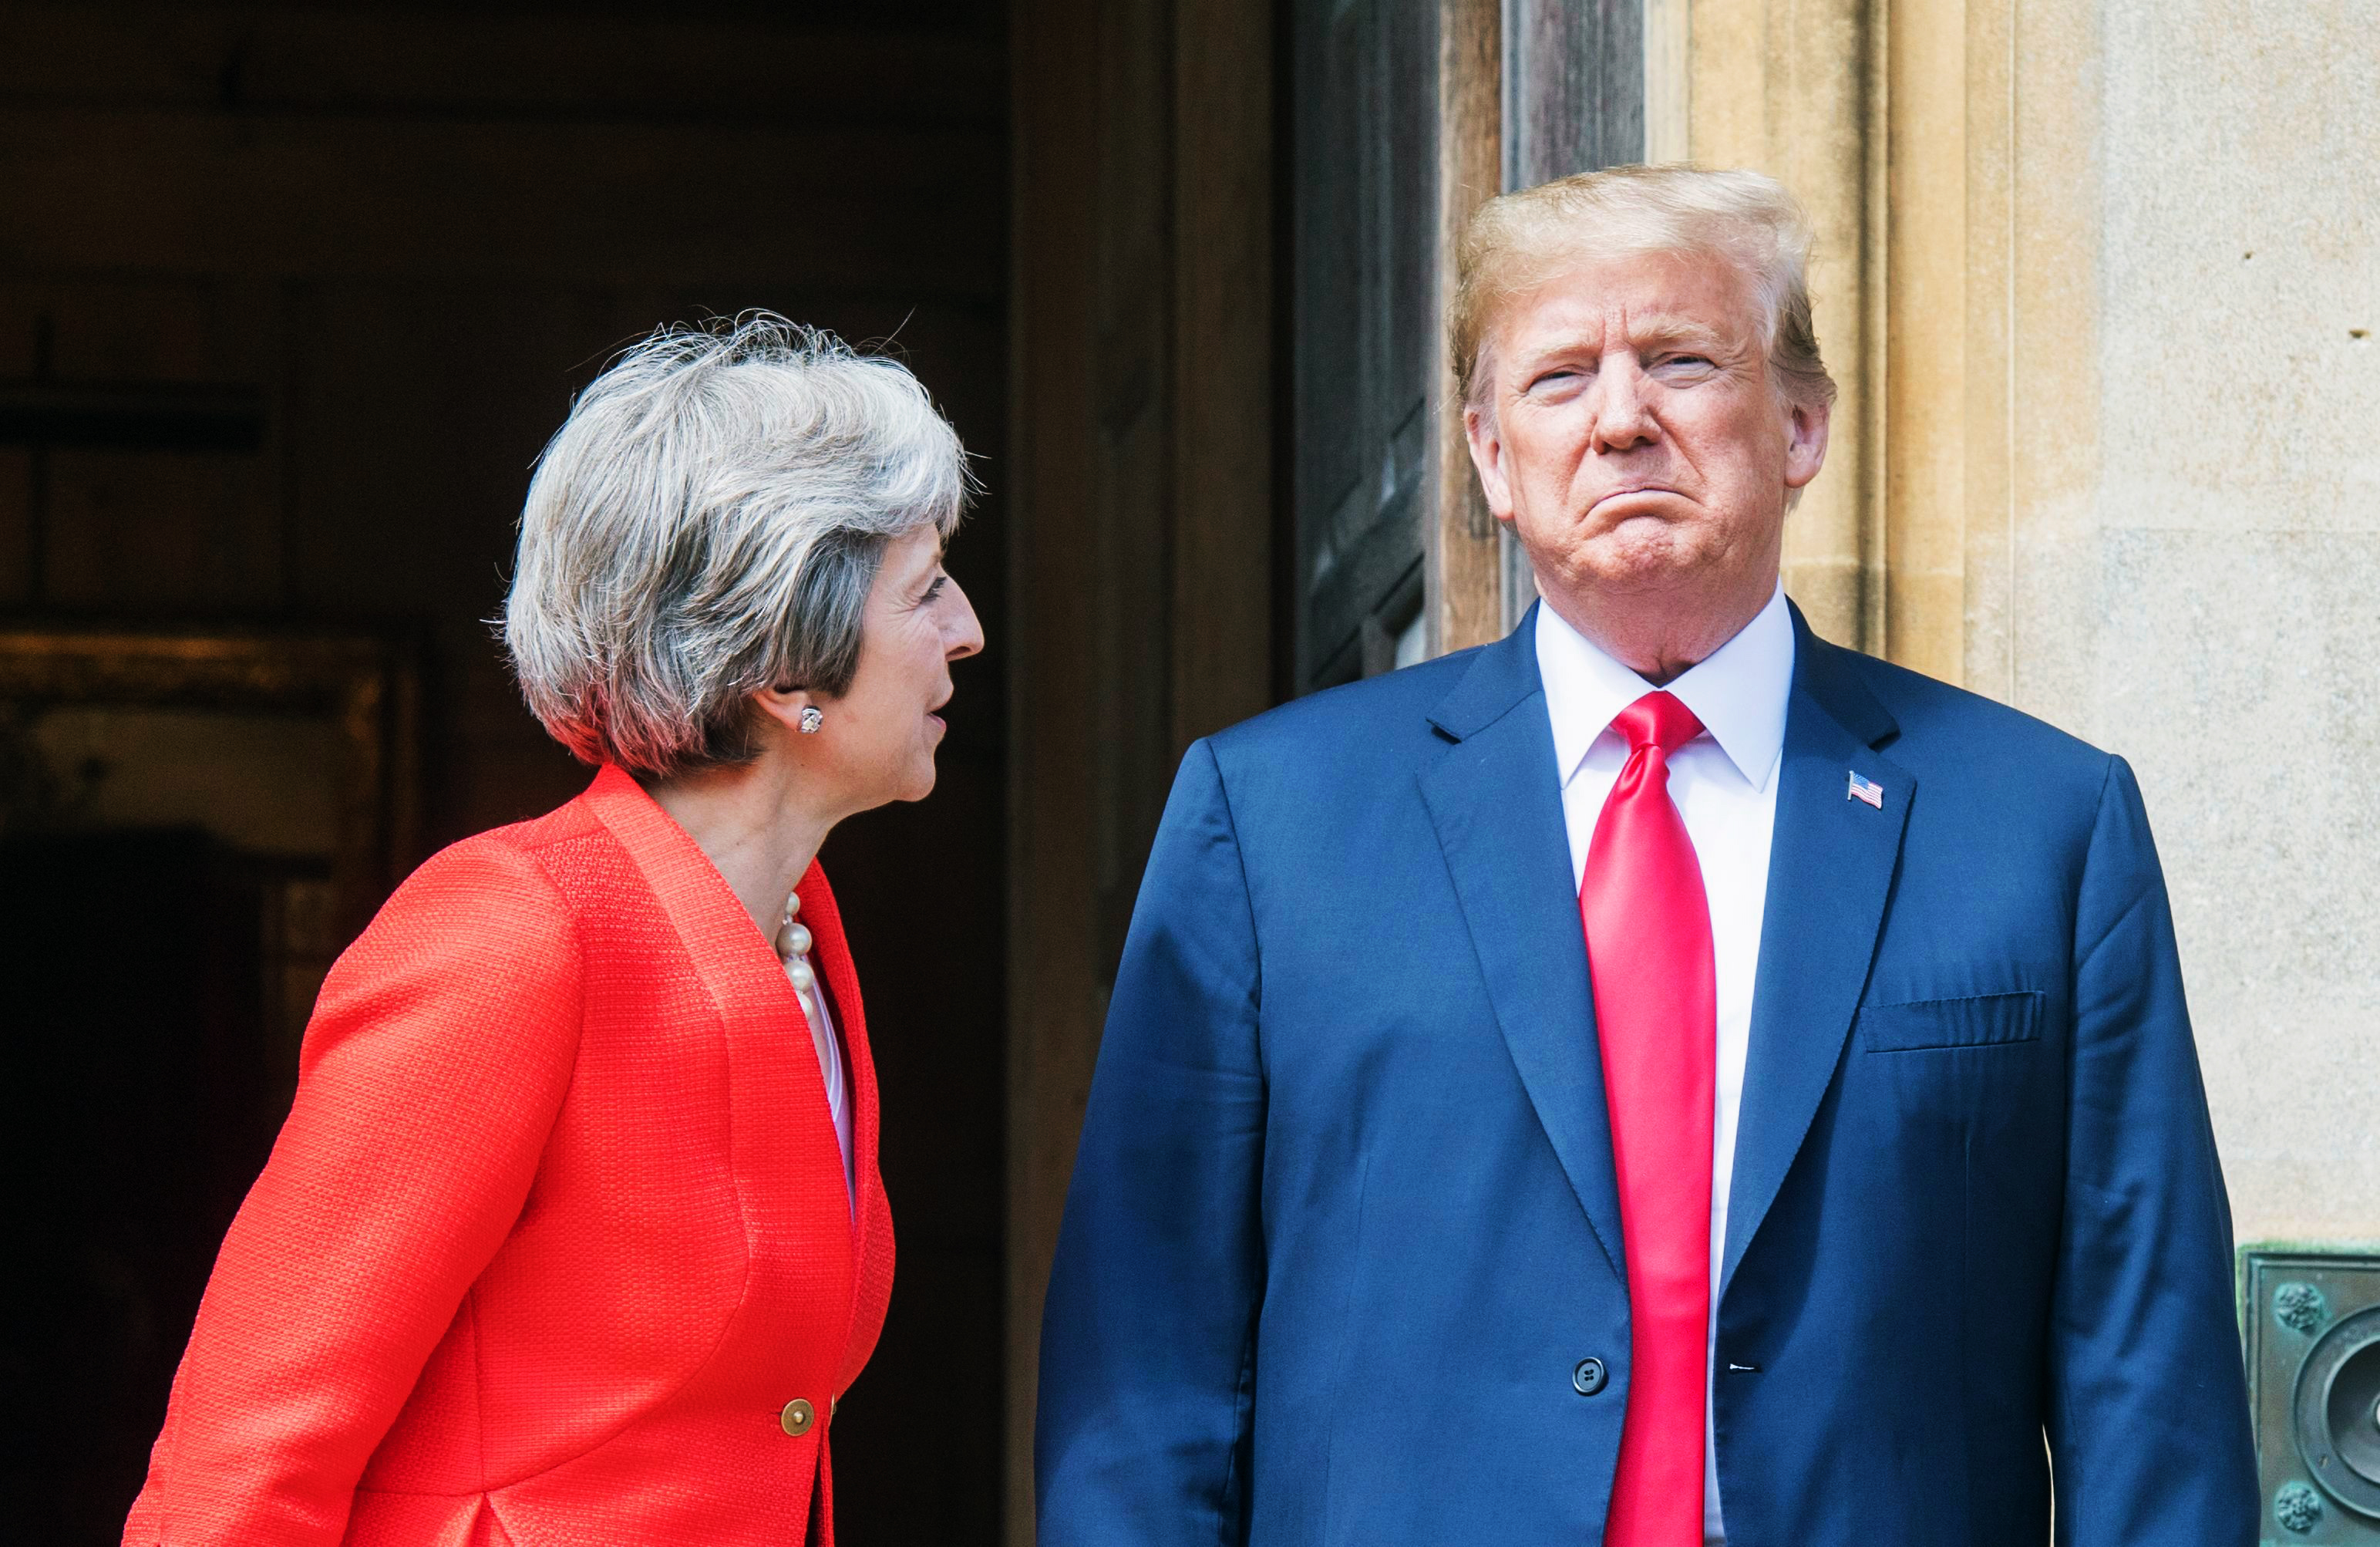 Trump Calls His Own Comments About Theresa May Fake News